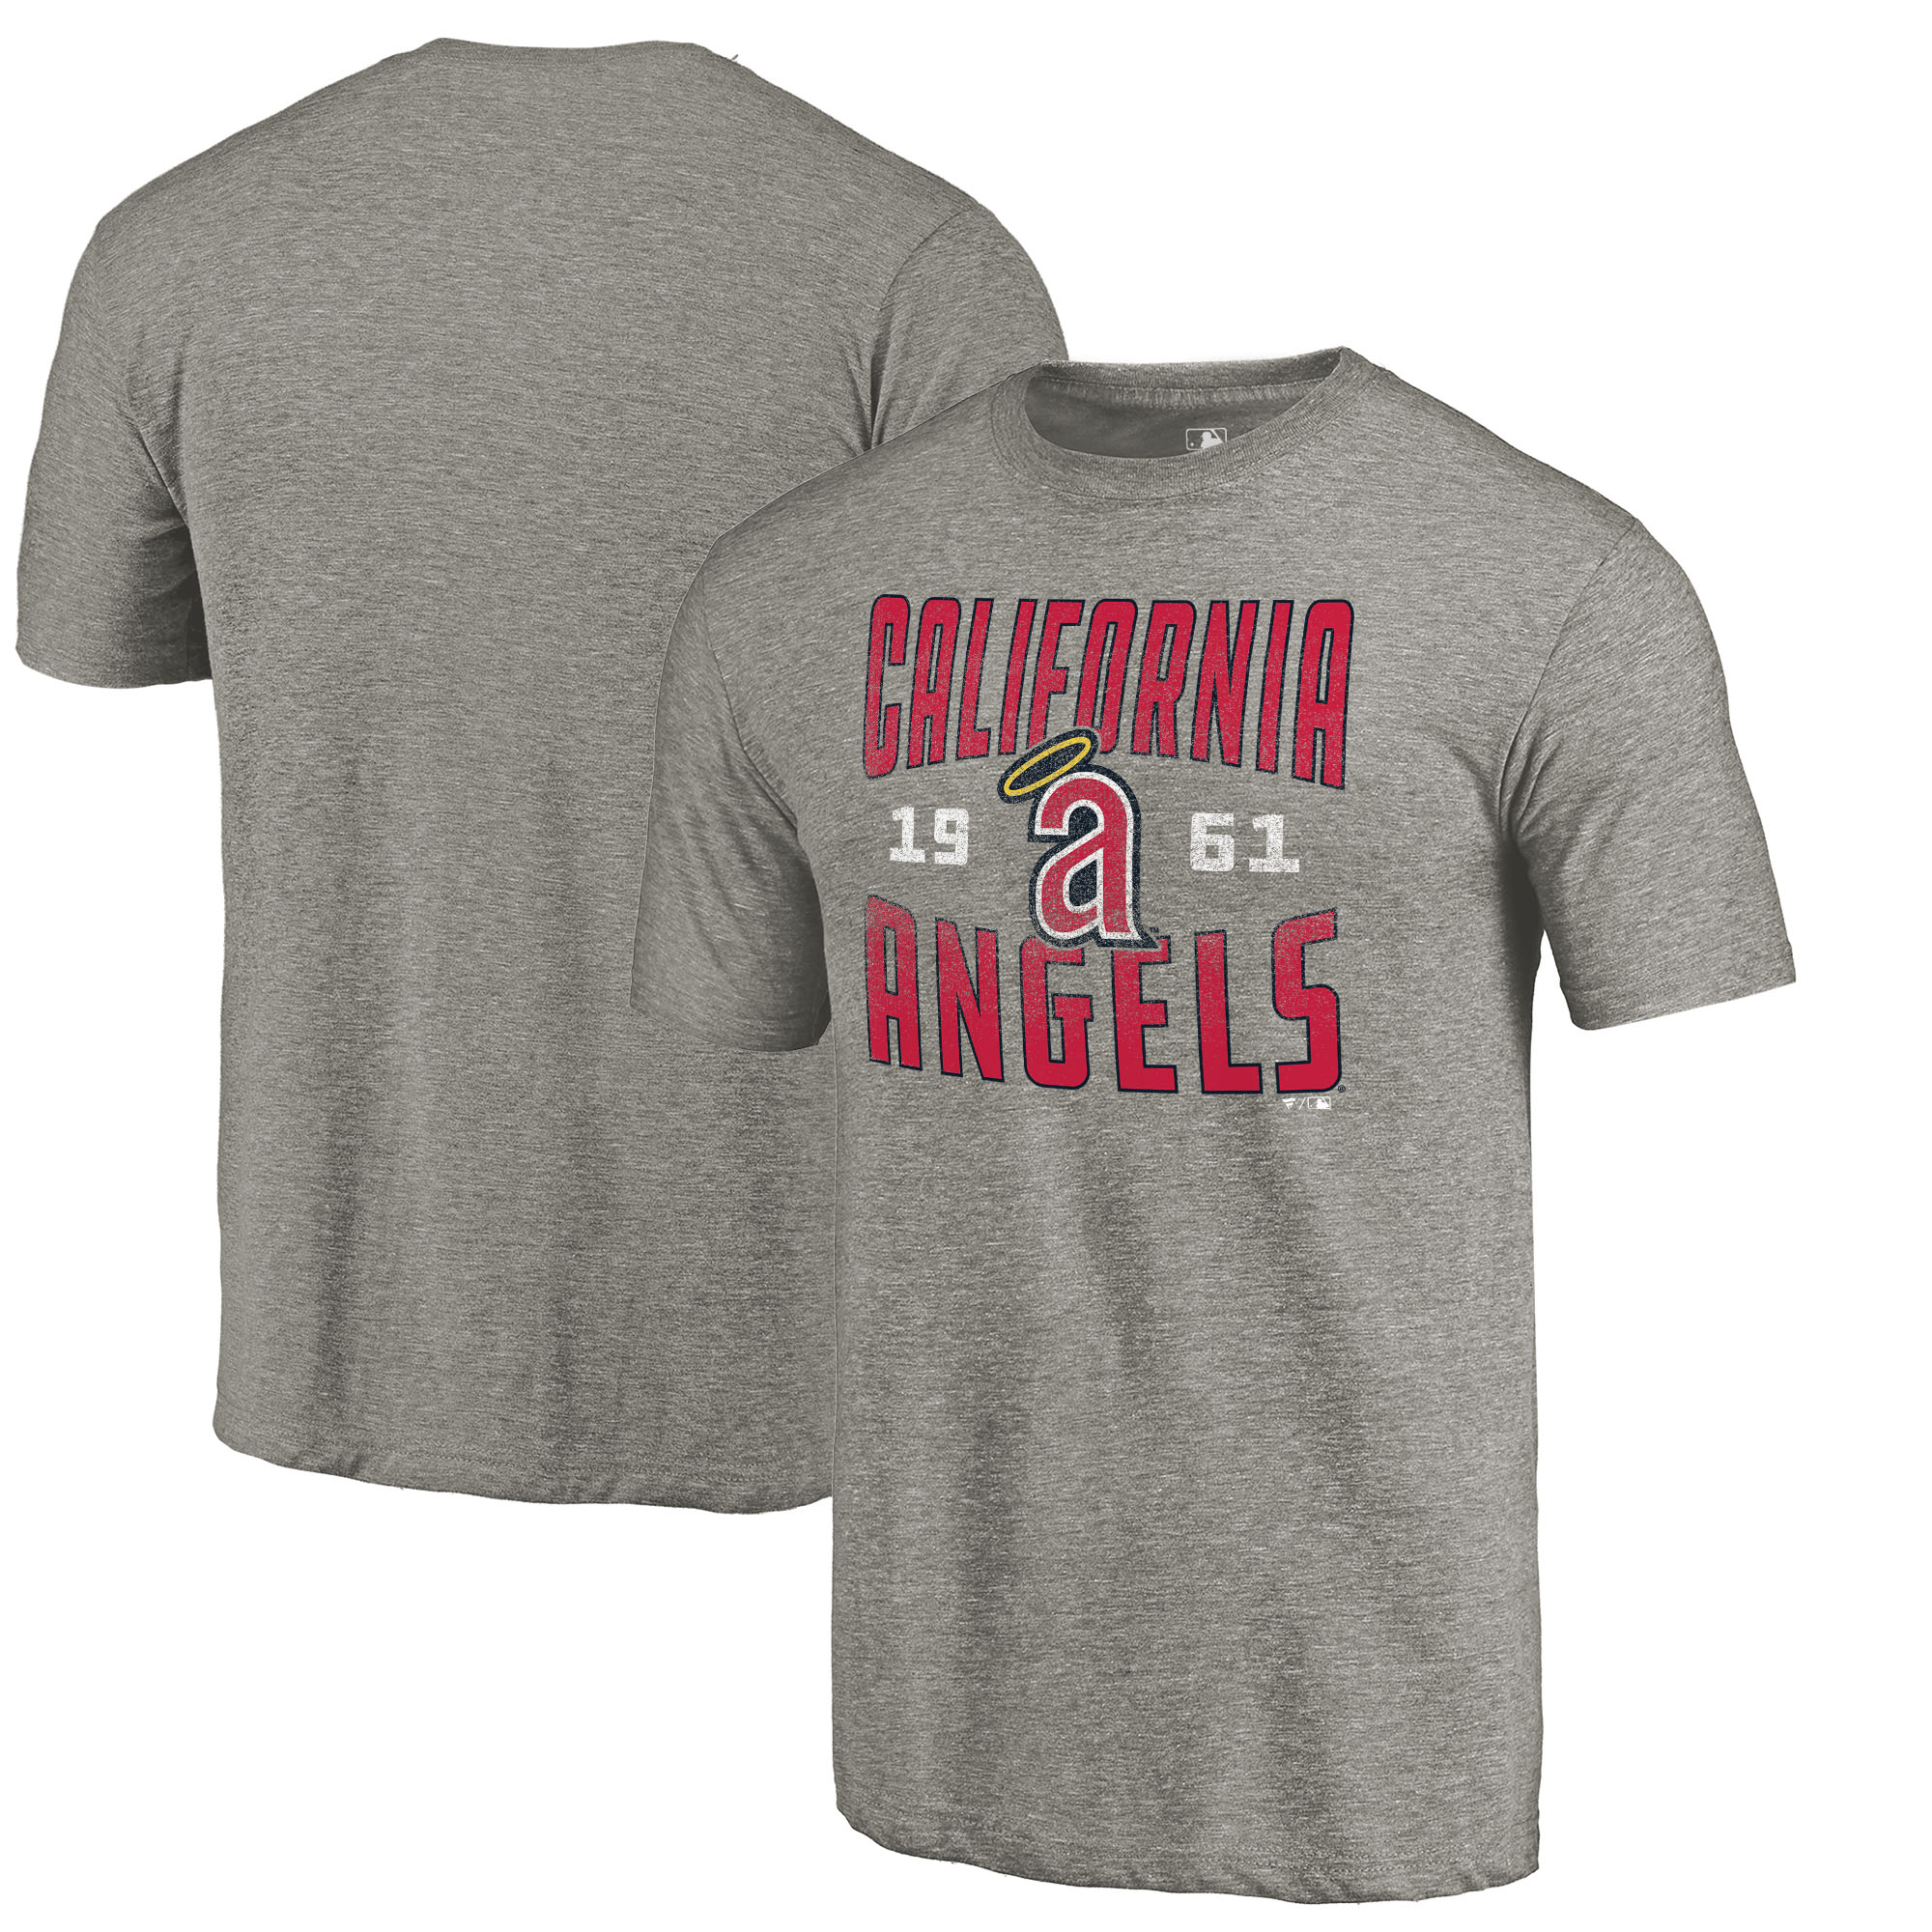 California Angels Fanatics Branded Cooperstown Collection Vintage Antique Stack Tri-Blend T-Shirt - Gray